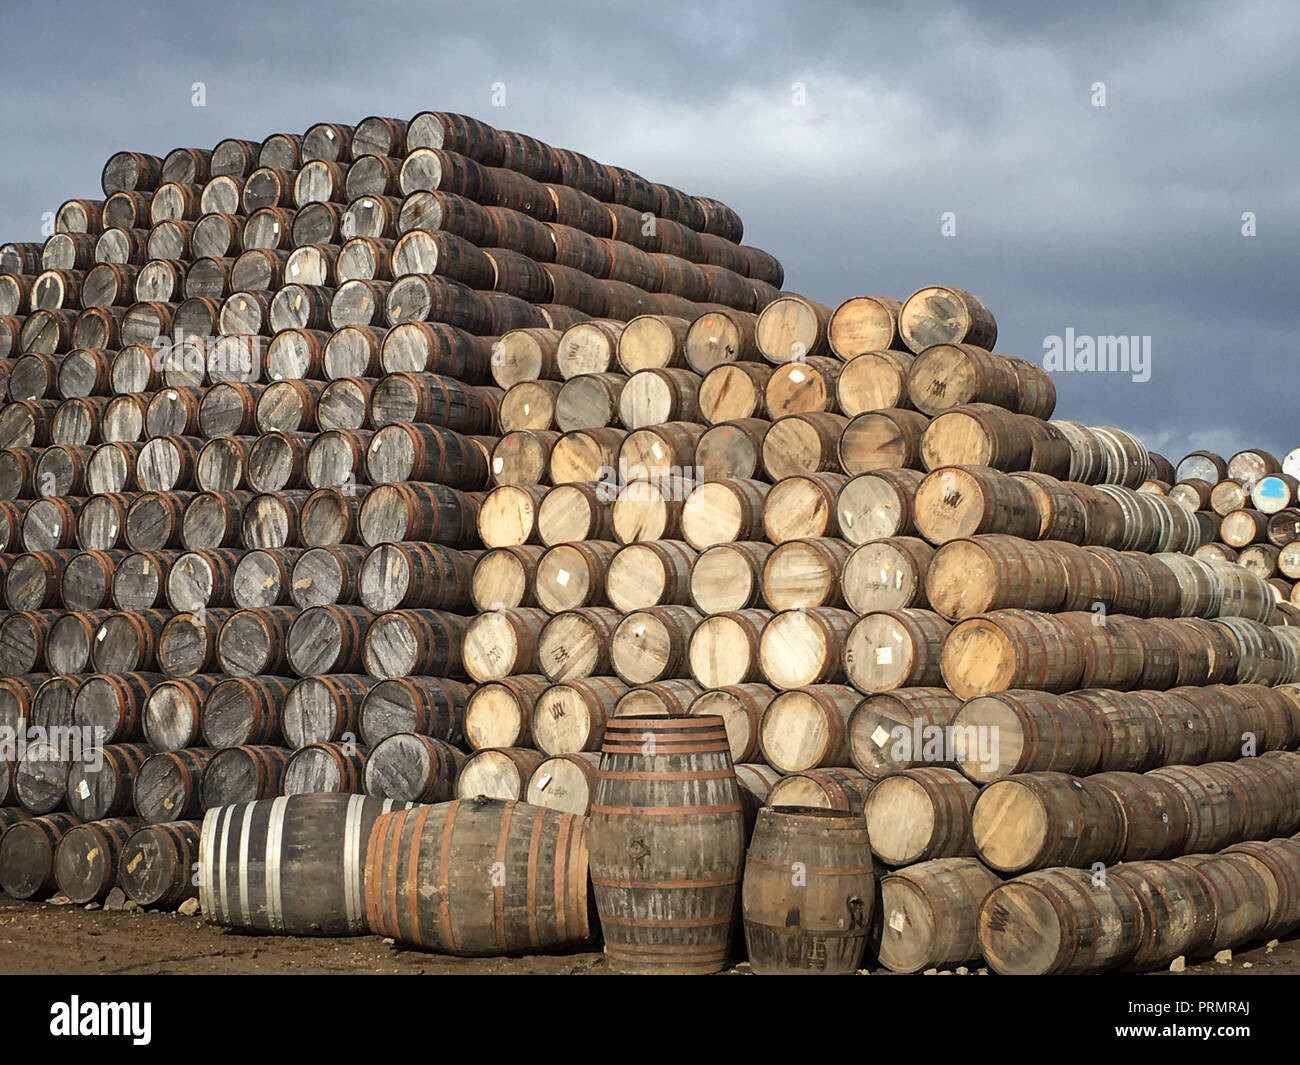 whisky barrels, in Speyside, in Aberlour, Scotland, on 02 October 2018. - Stock Image